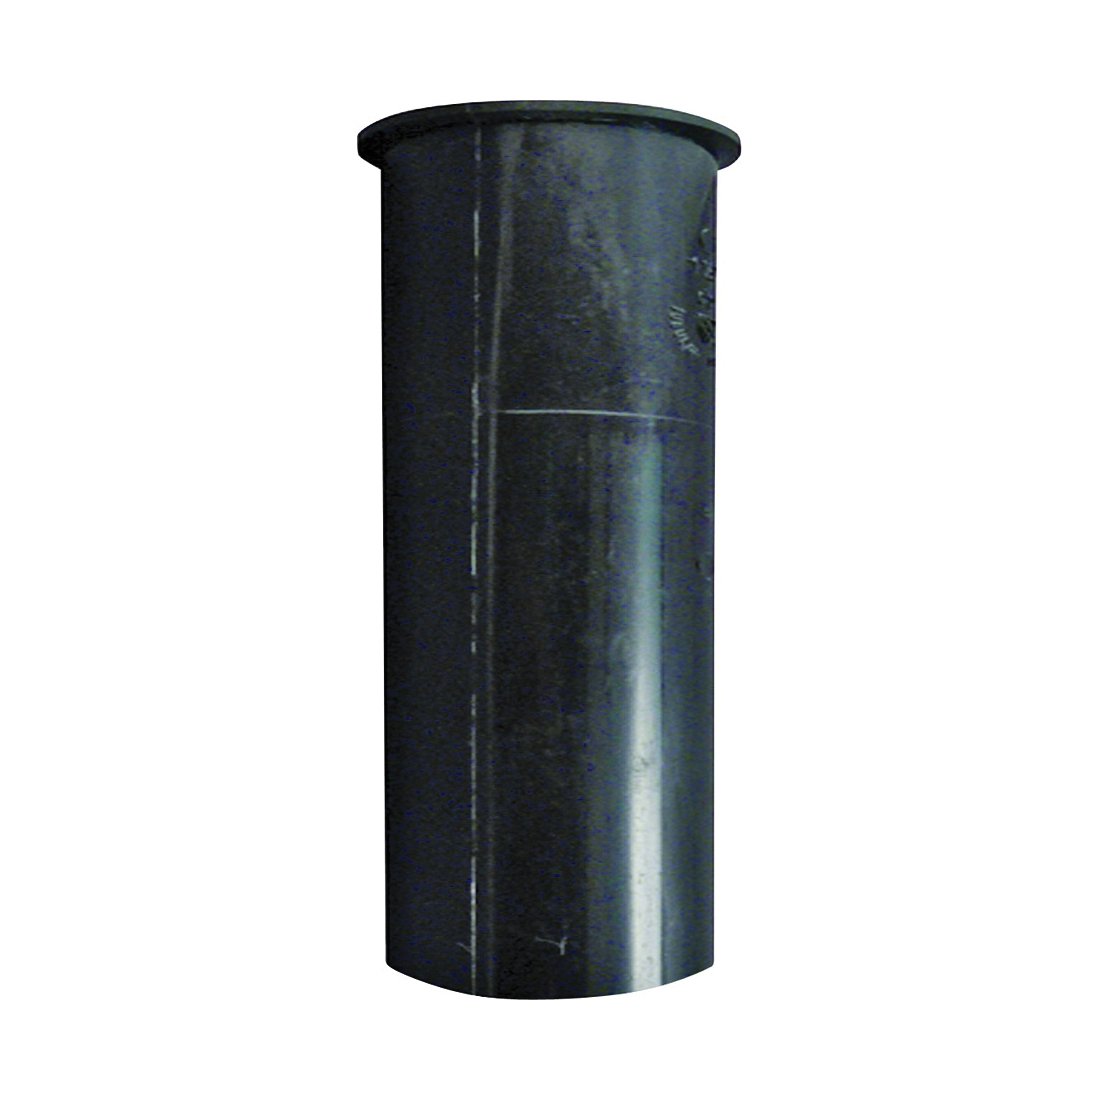 Picture of Plumb Pak PP905B Sink Tailpiece, 1-1/2 in, 6 in L, PVC, Black